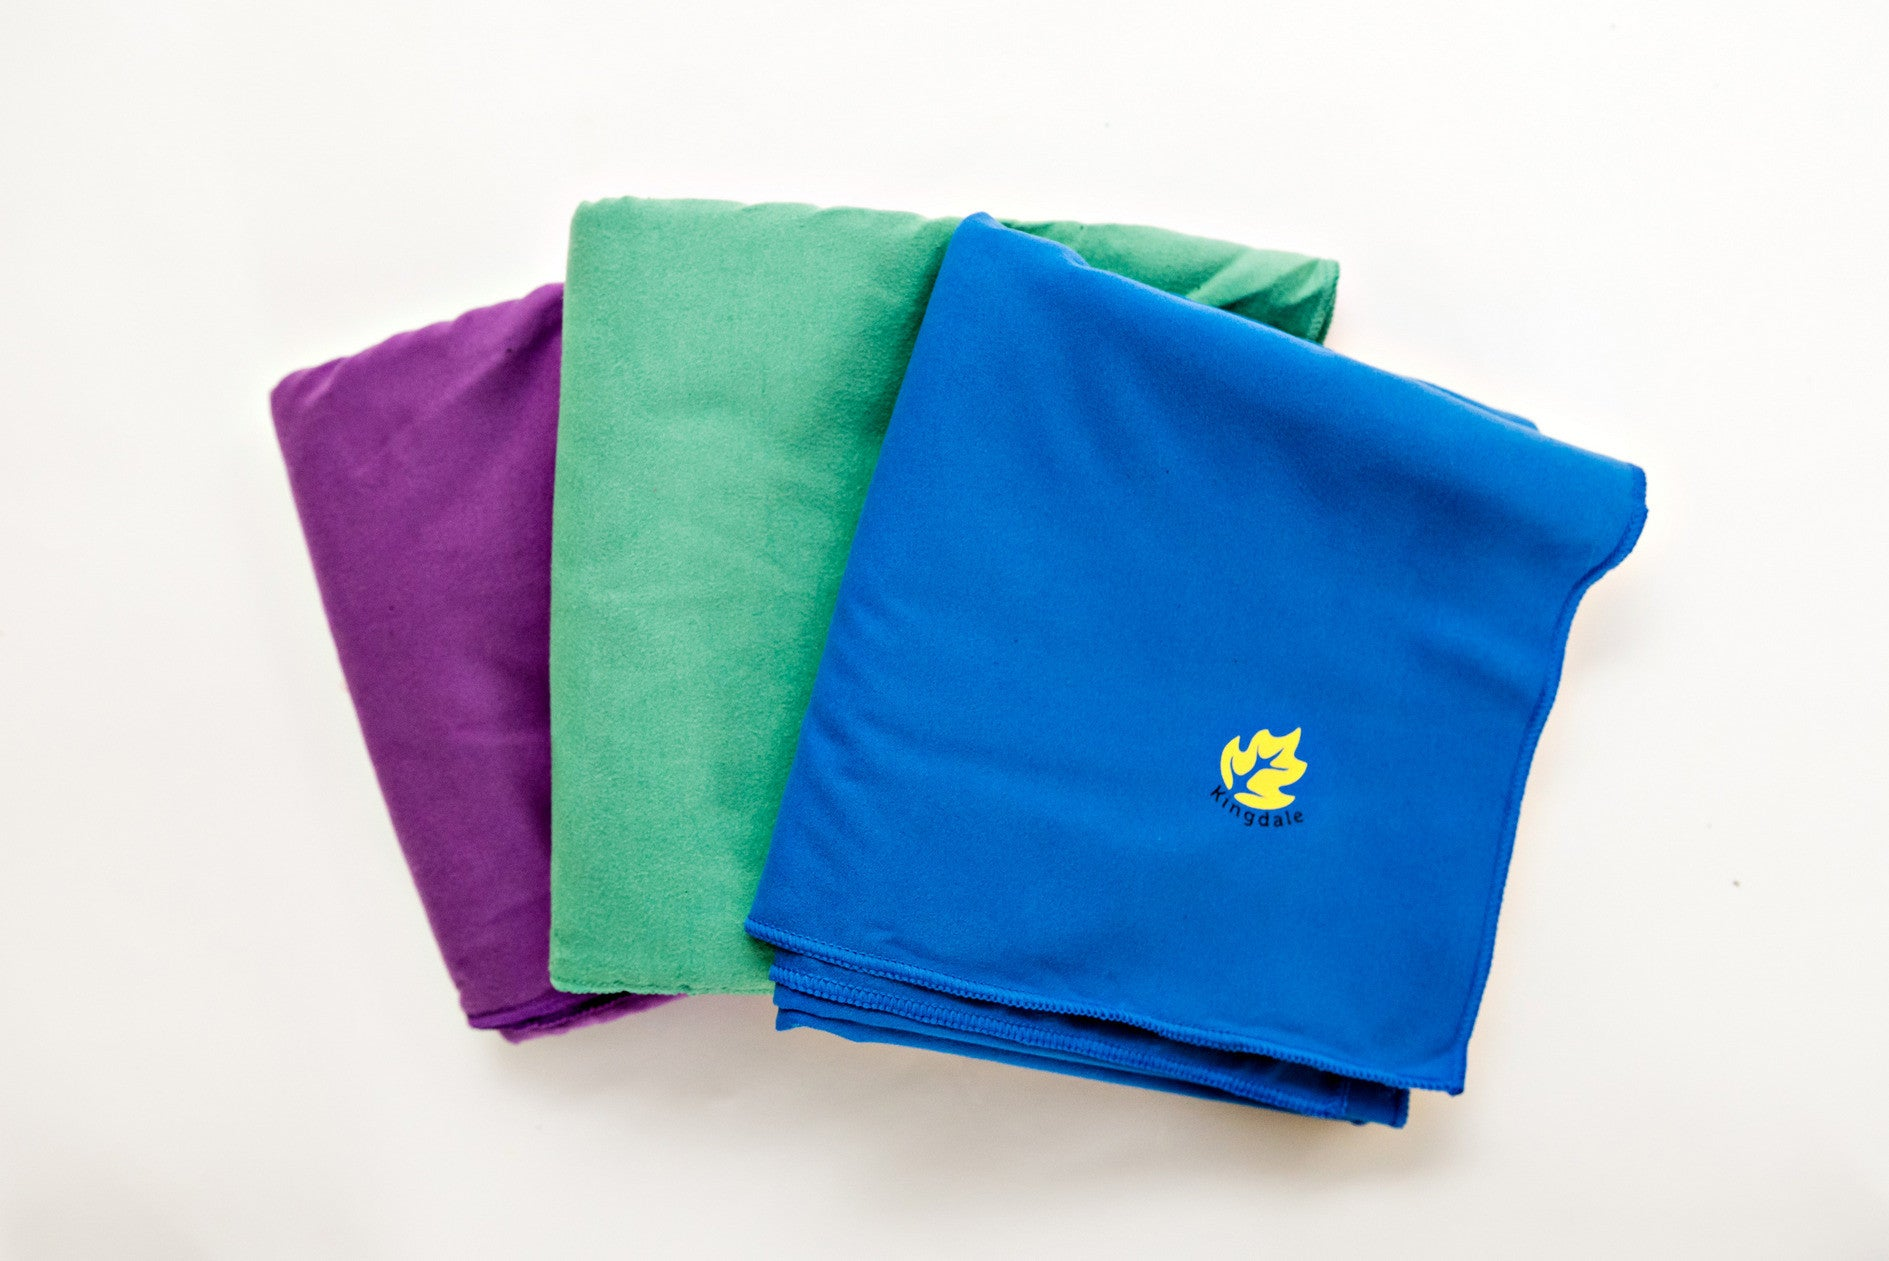 X Large Lightweight Microfibre Towel - Extremely Absorbant and Lightweight,